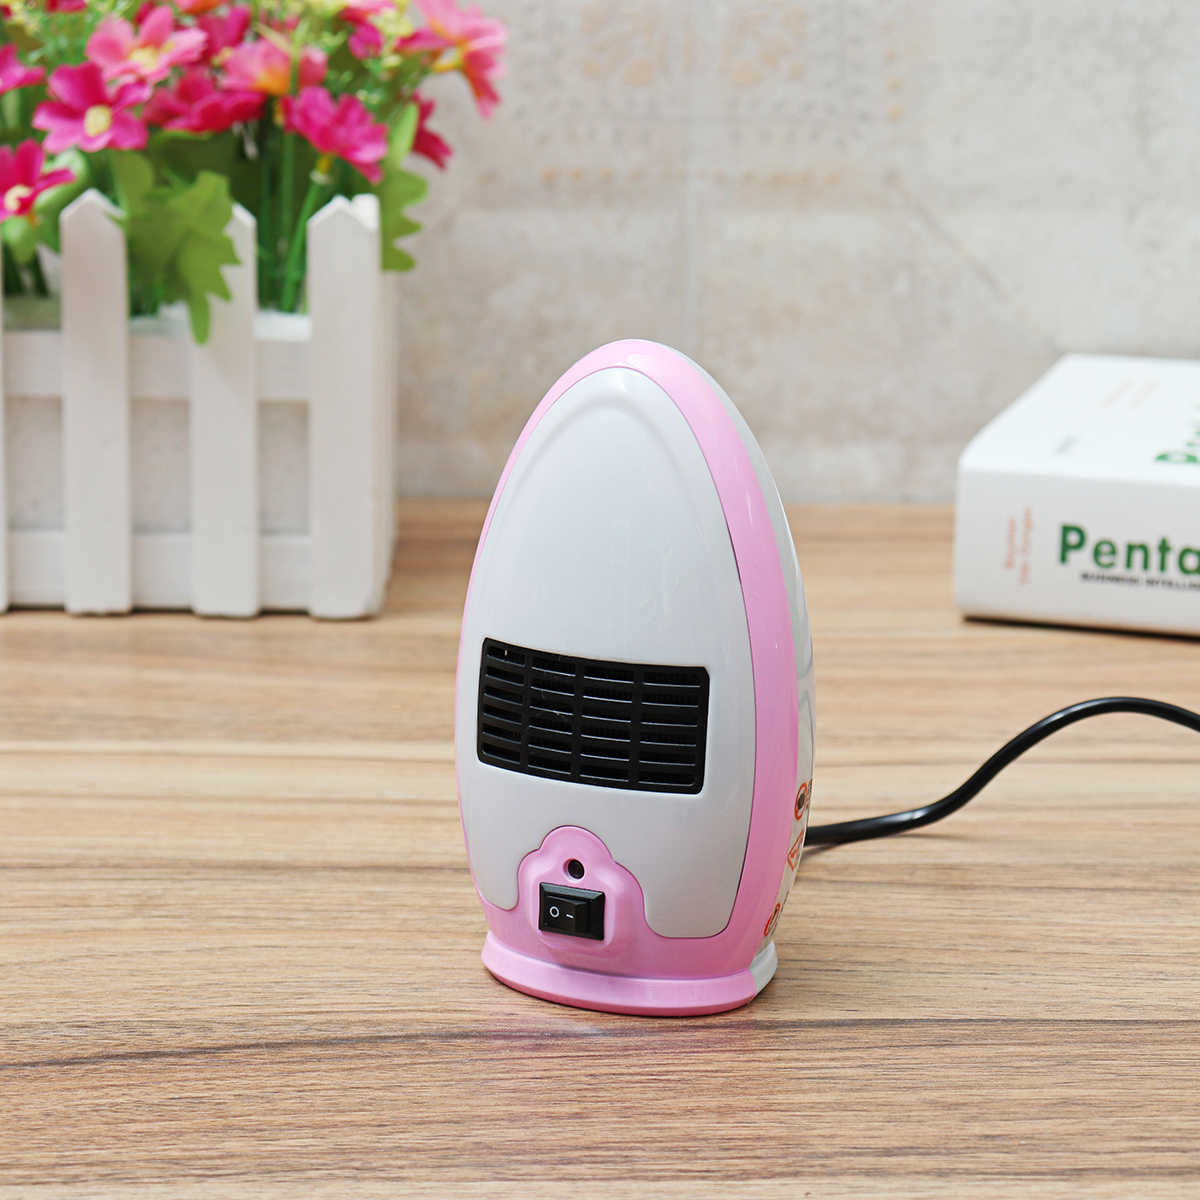 medium resolution of  200w 220v electric heater mini electric warm air heater fan stove for desktop household home office